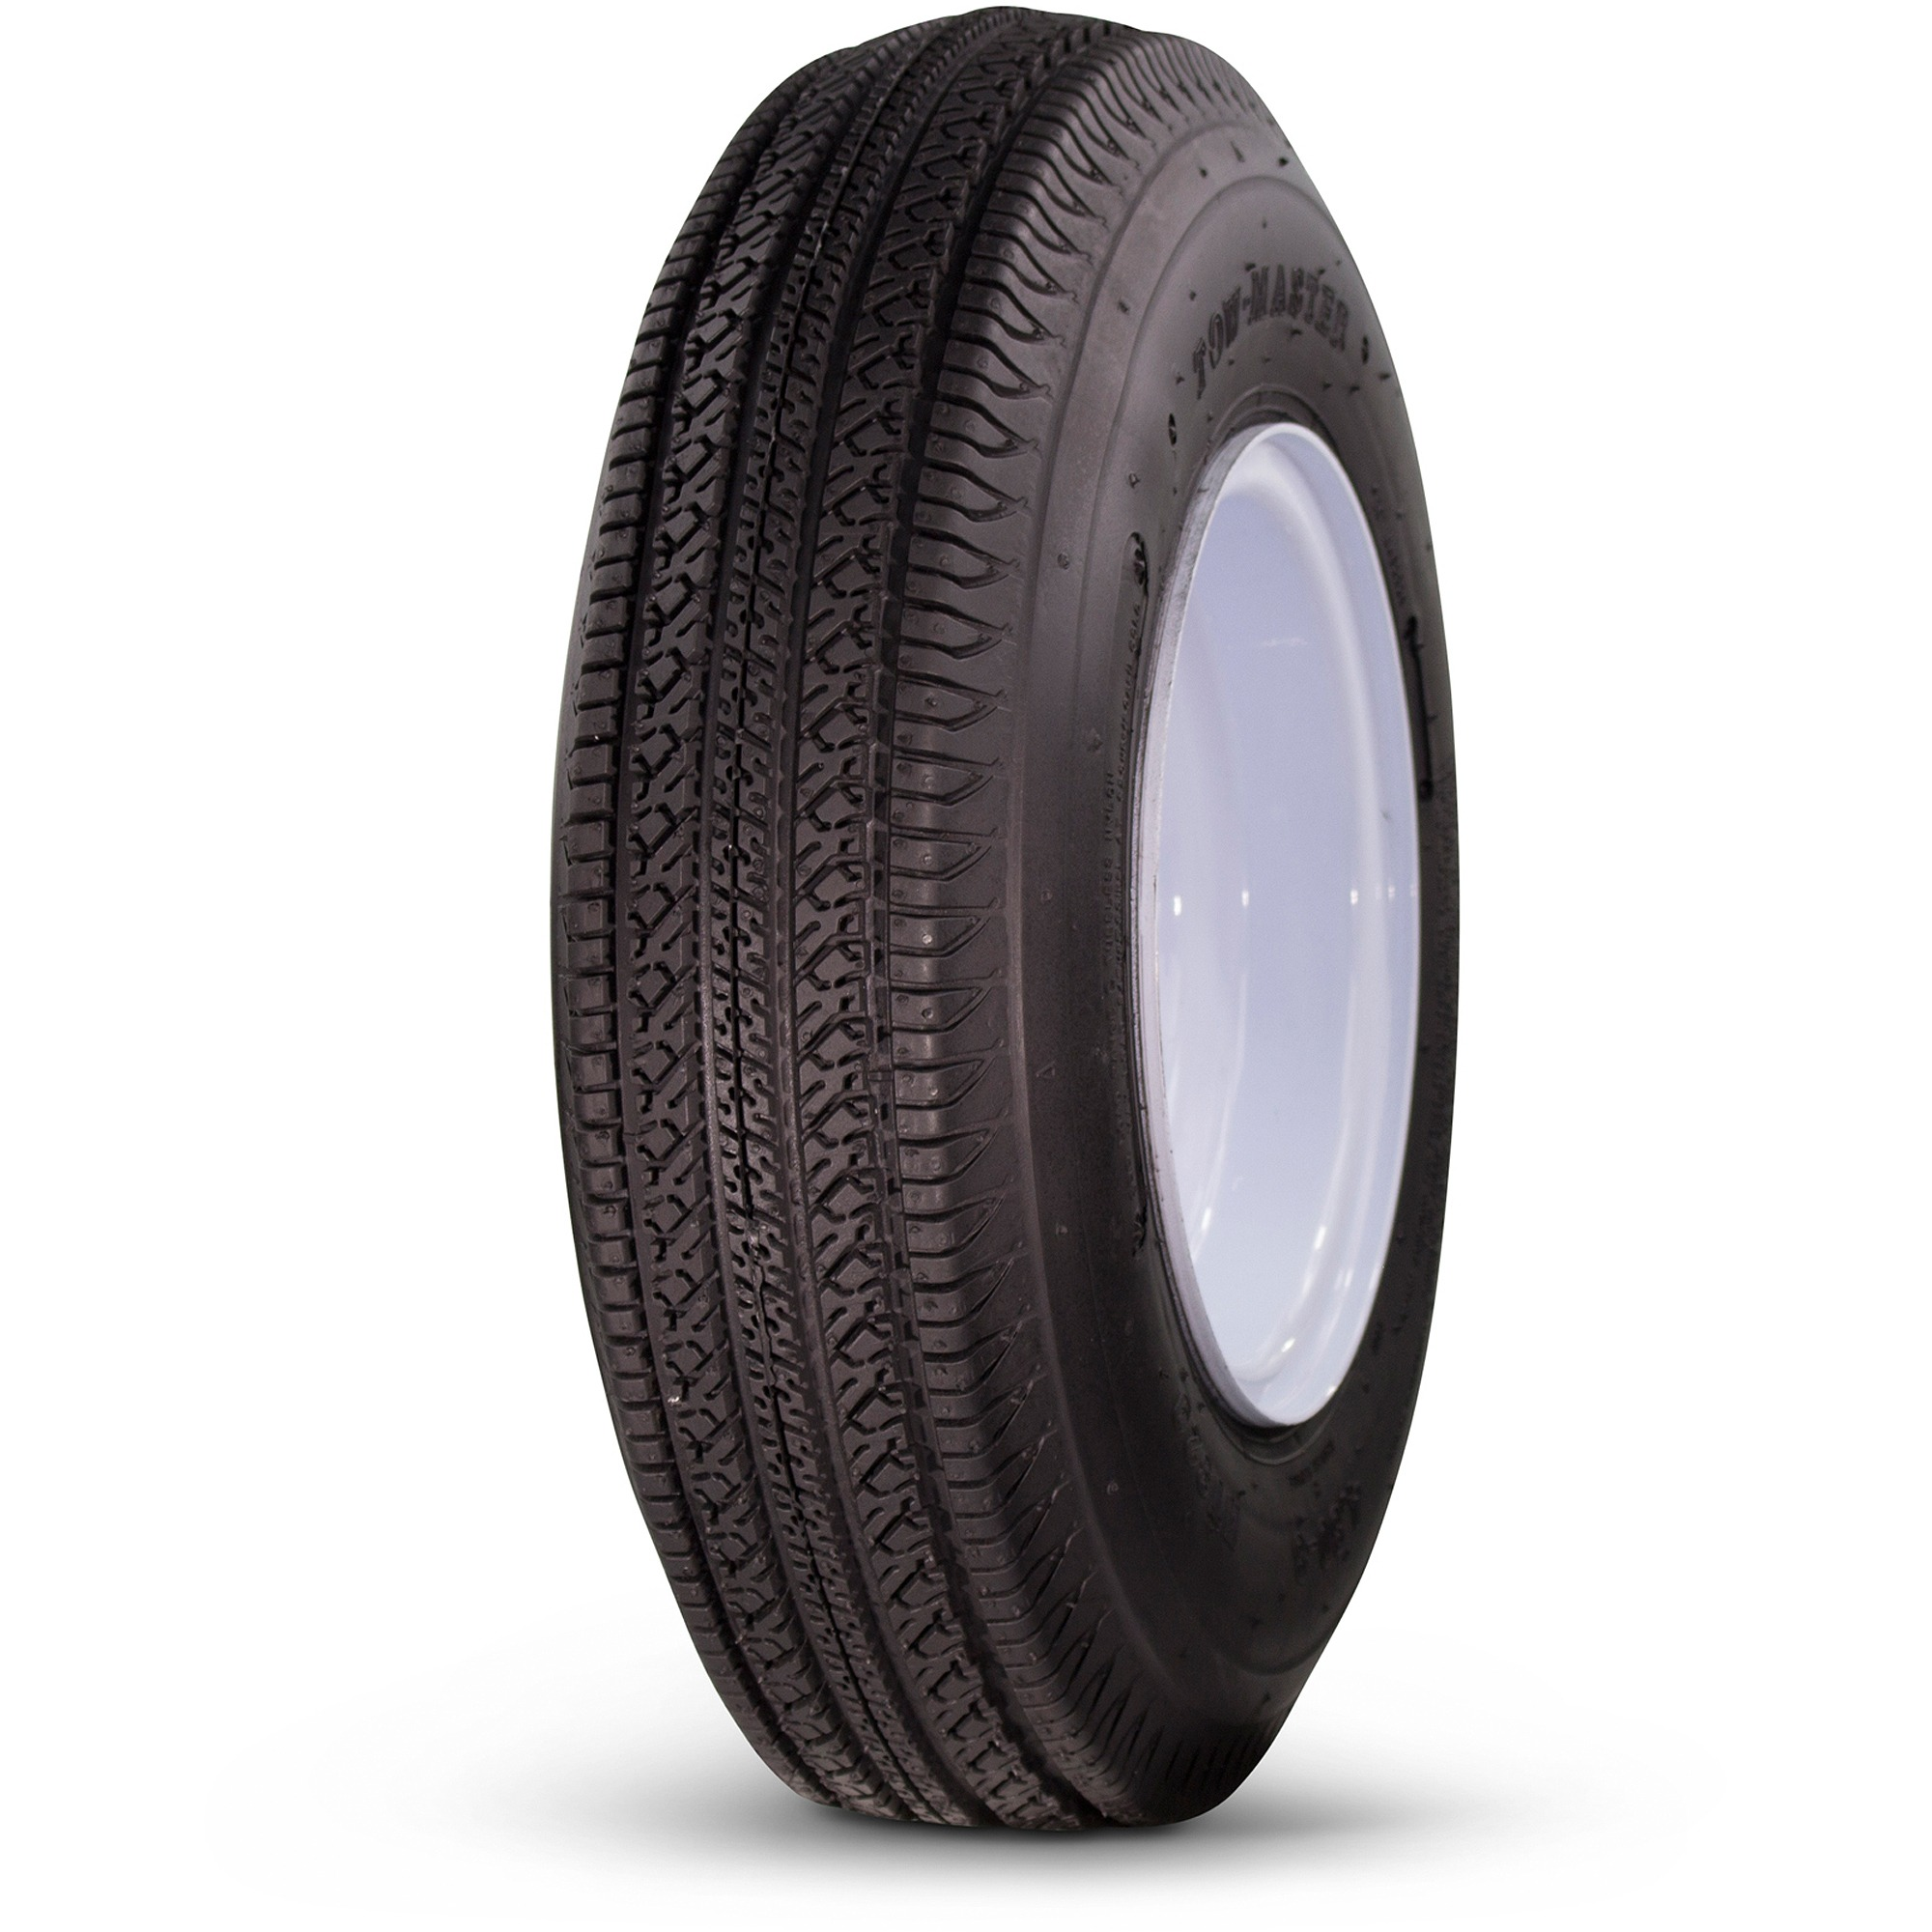 Greenball Towmaster 4.80-8 6 PR Non-Radial Hi-Speed Bias Trailer Tire and Wheel Assembly, 4 Lug White Color Wheel